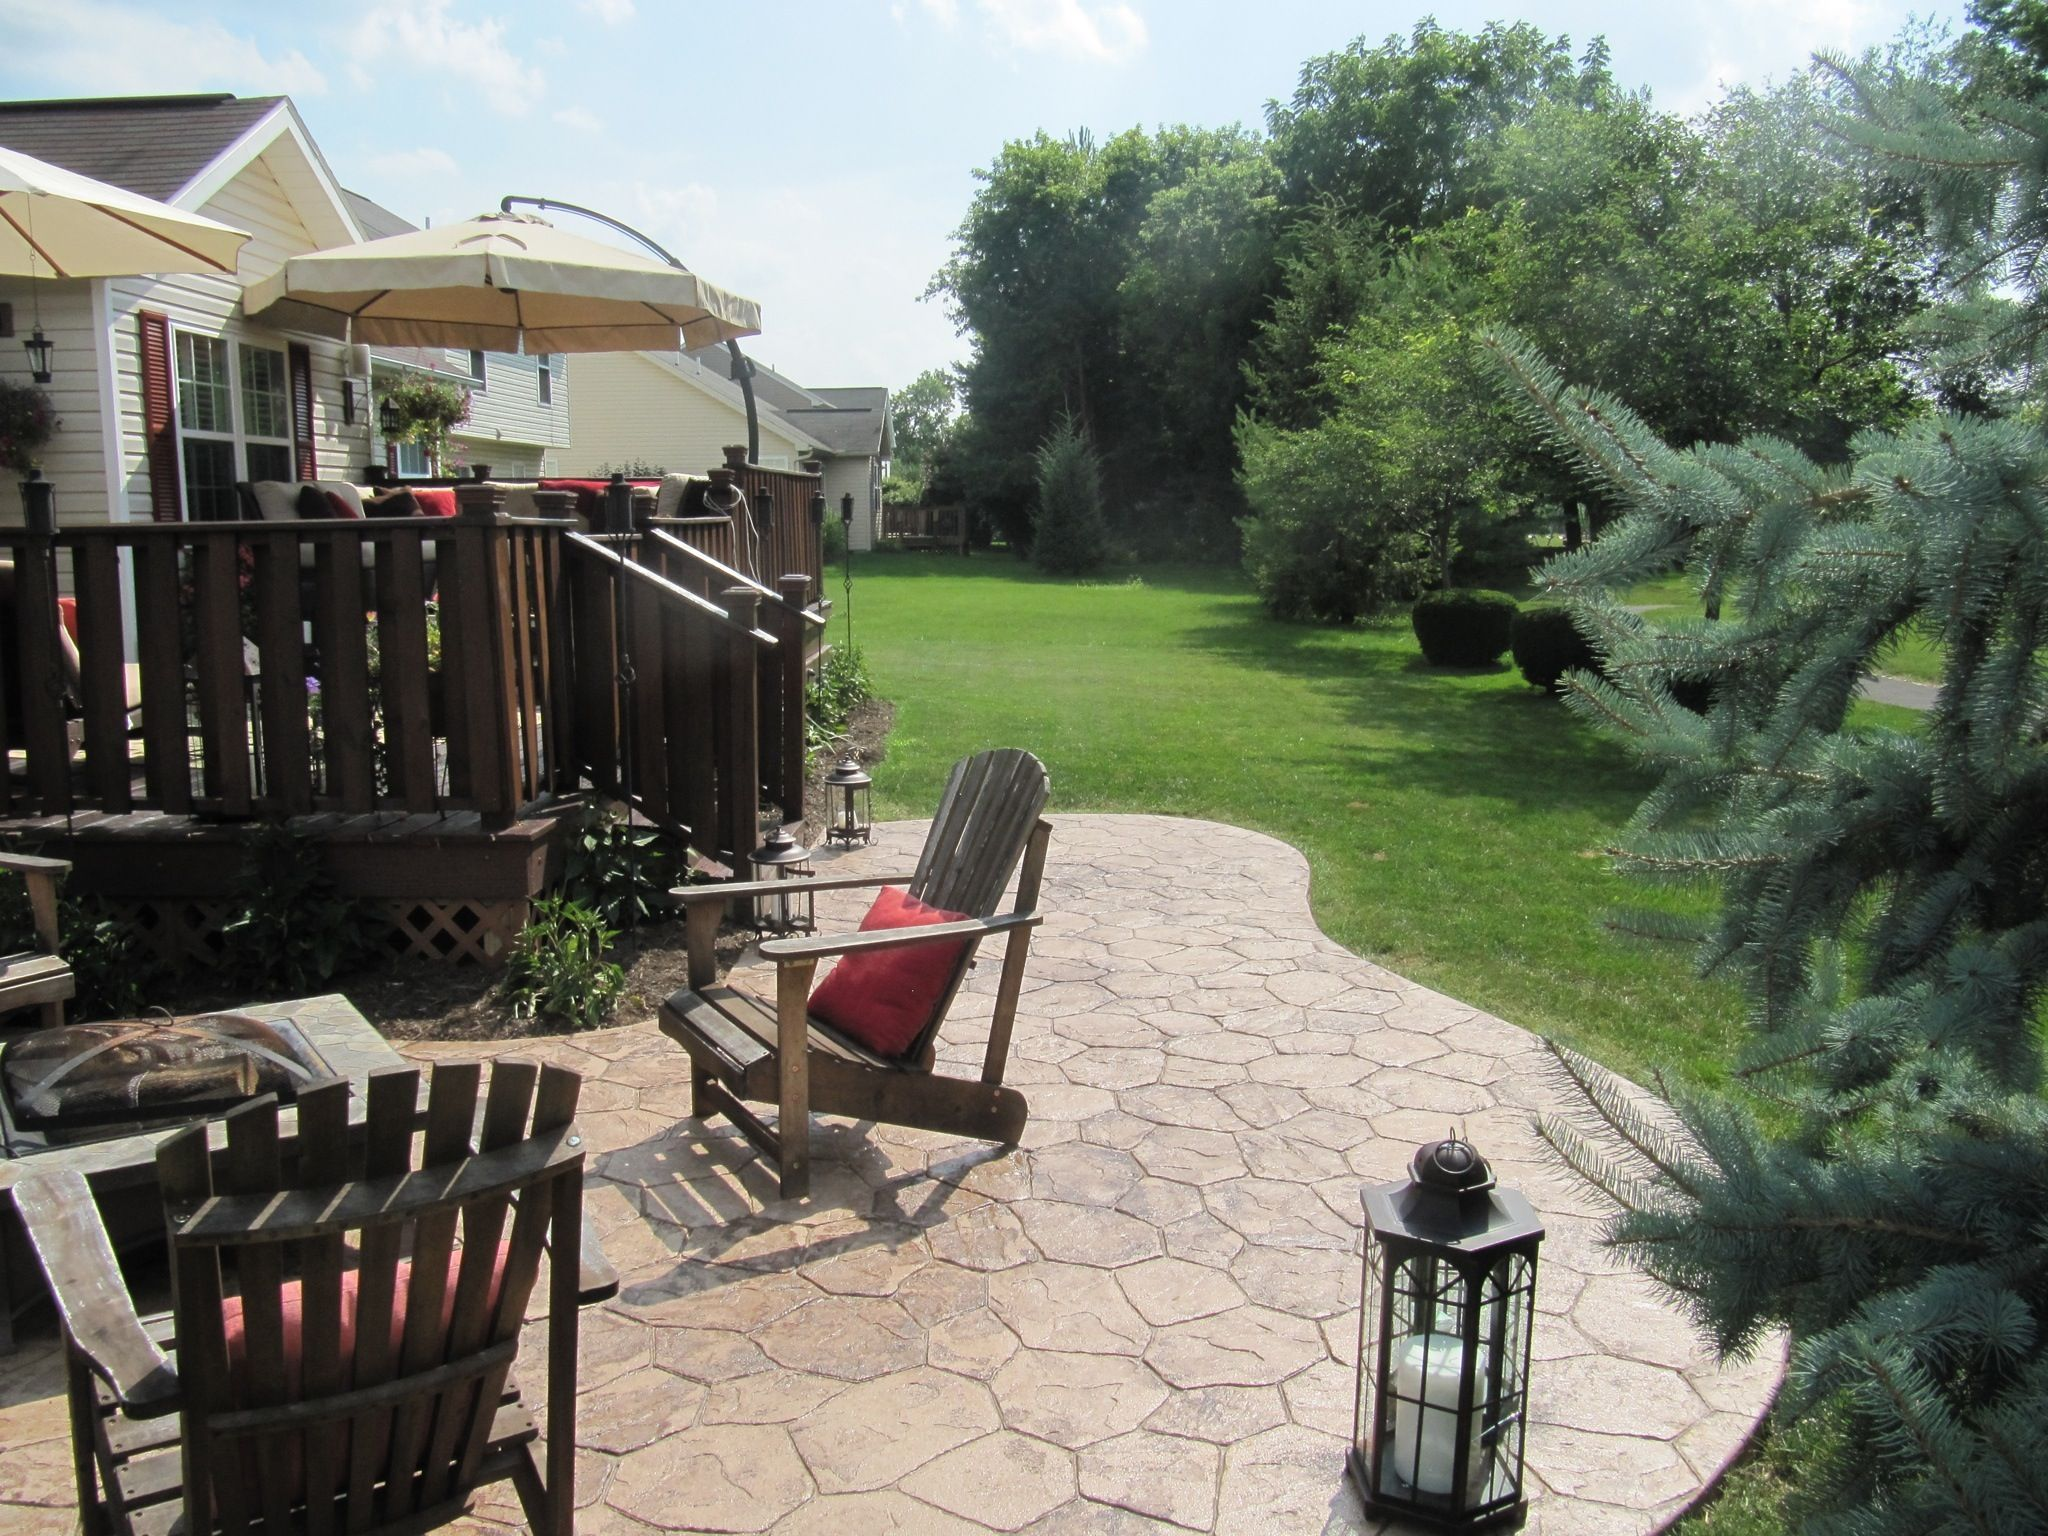 Adding a lower patio area off your deck is a beautiful way to